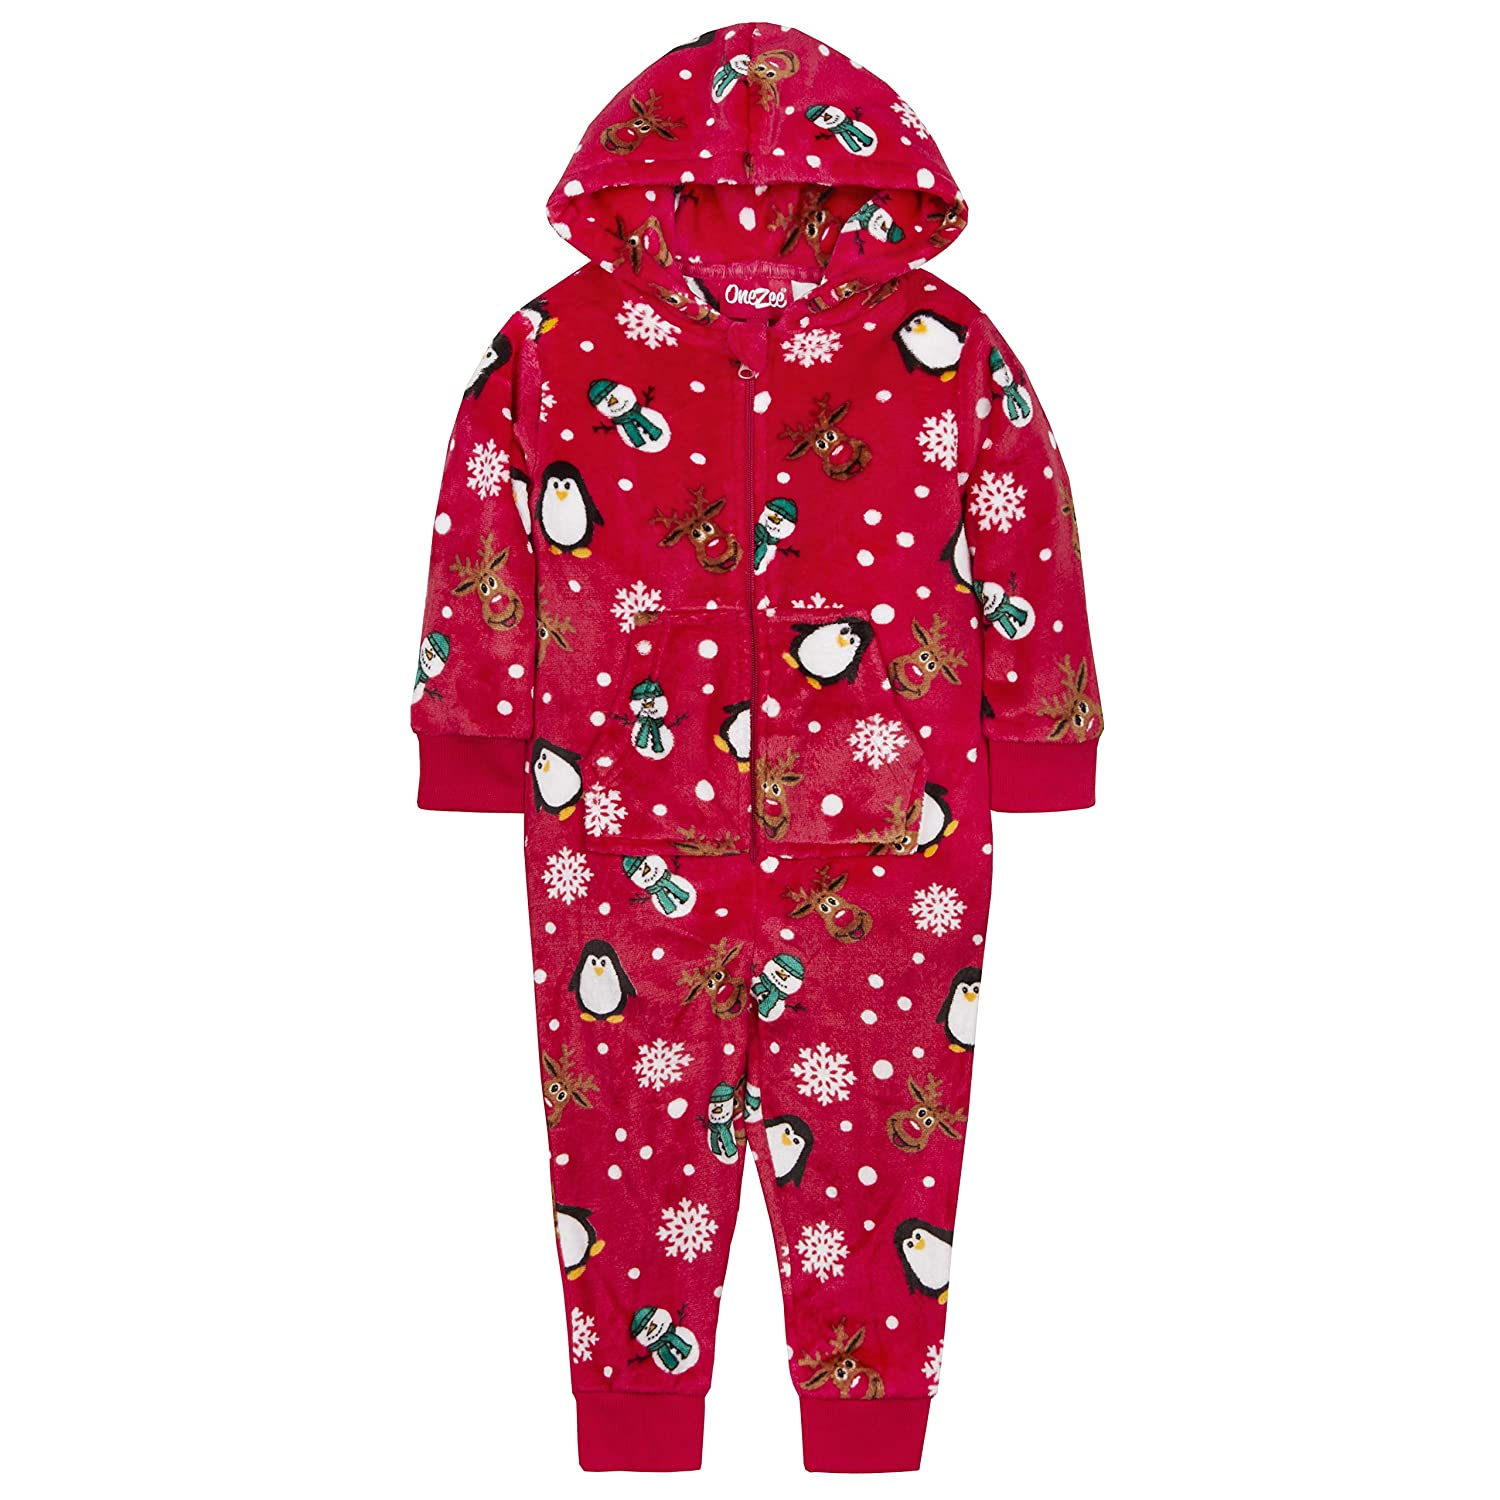 Childrens Unisex Christmas Design Onesie